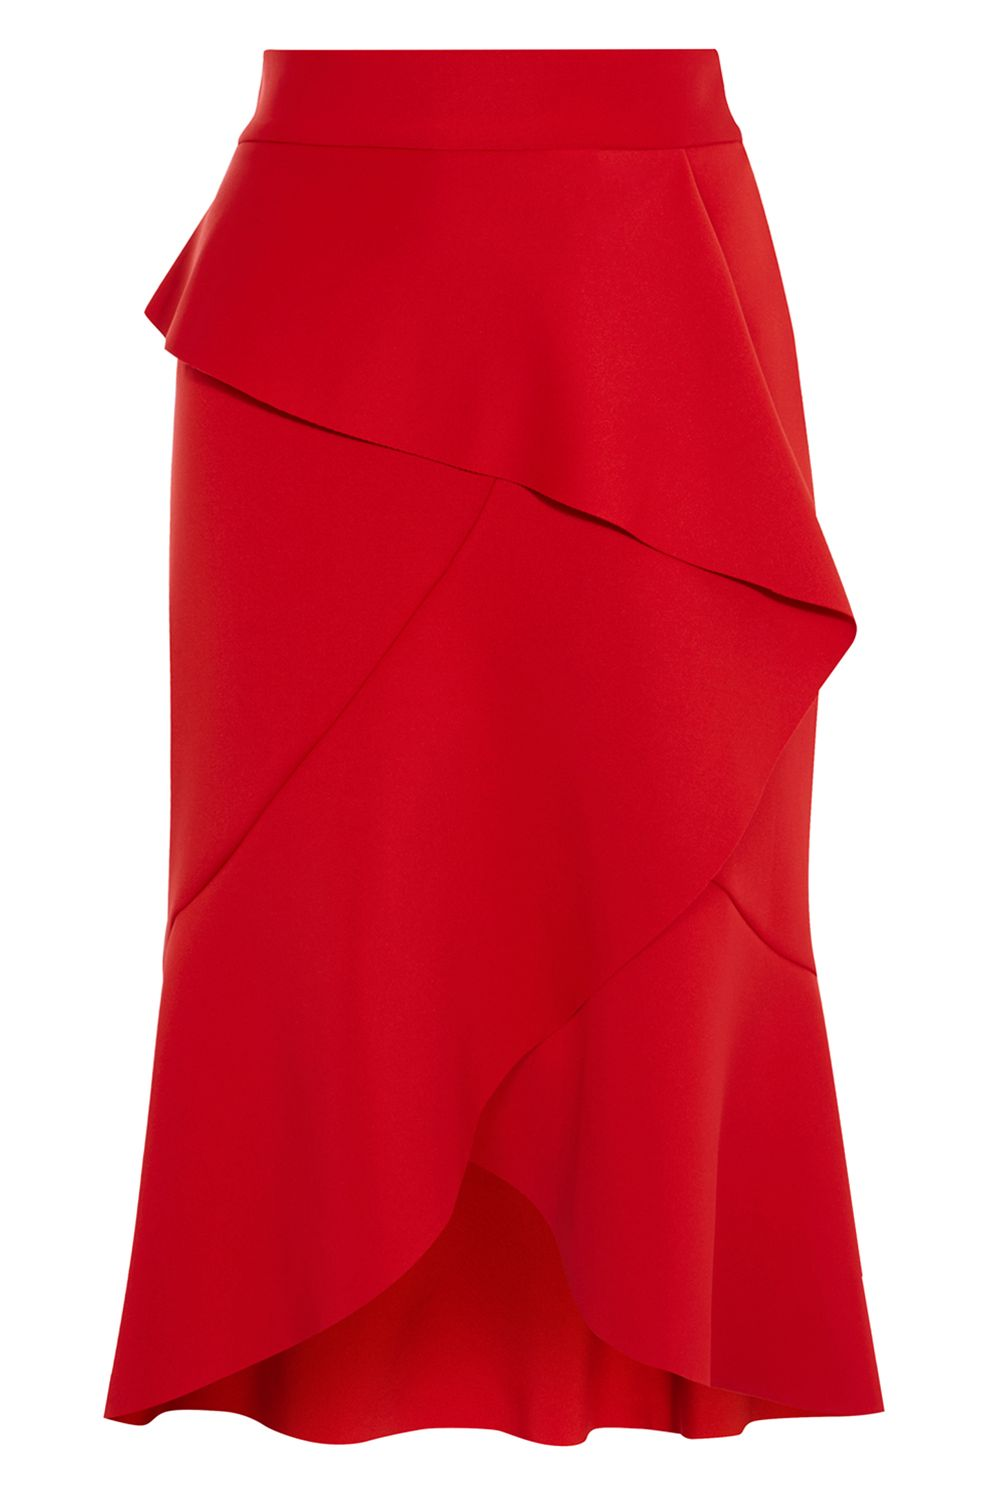 Coast Keegan Ruffle Skirt, Red